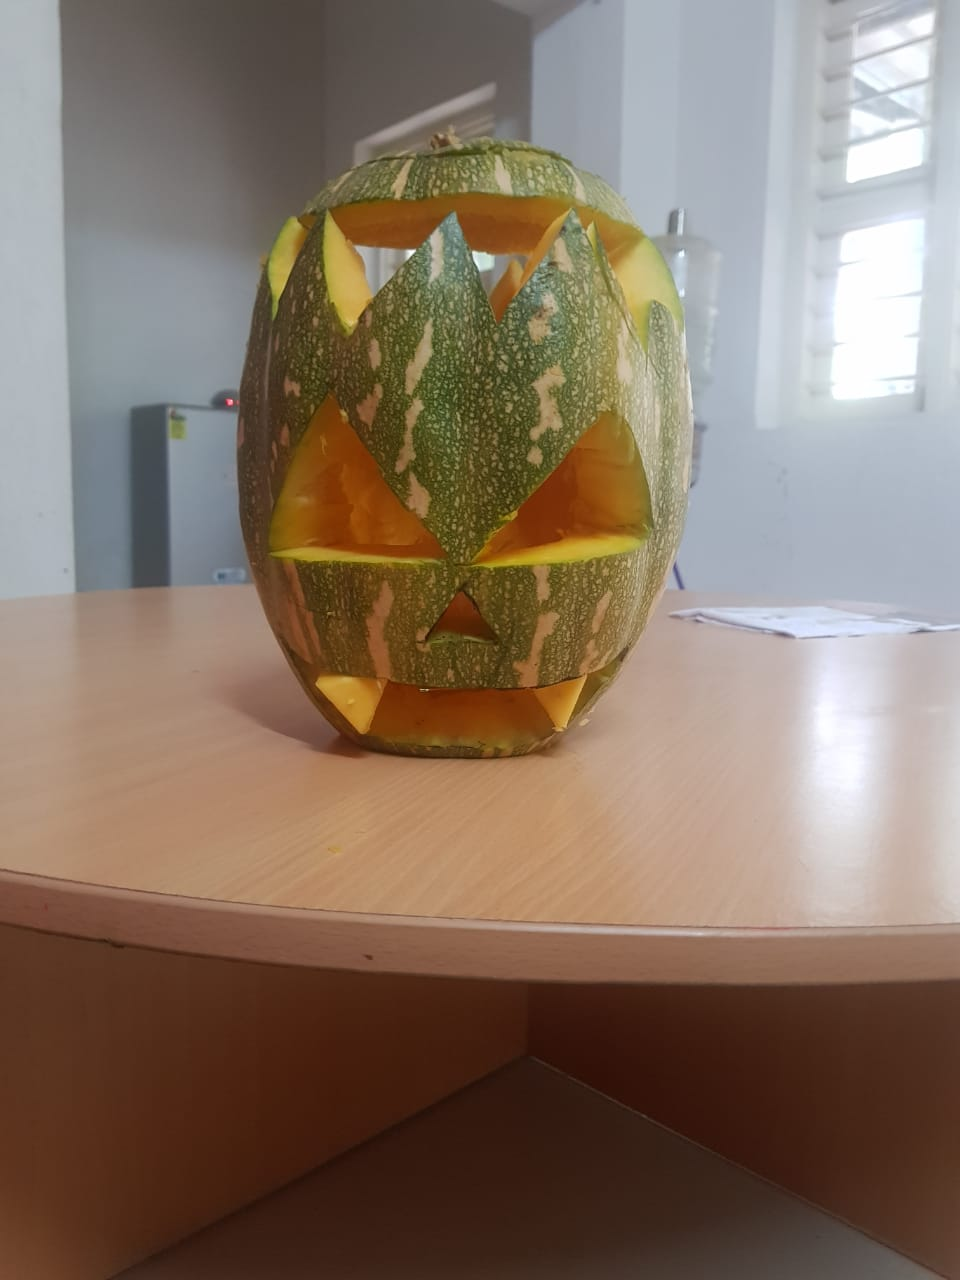 Before decorating the pumpkin